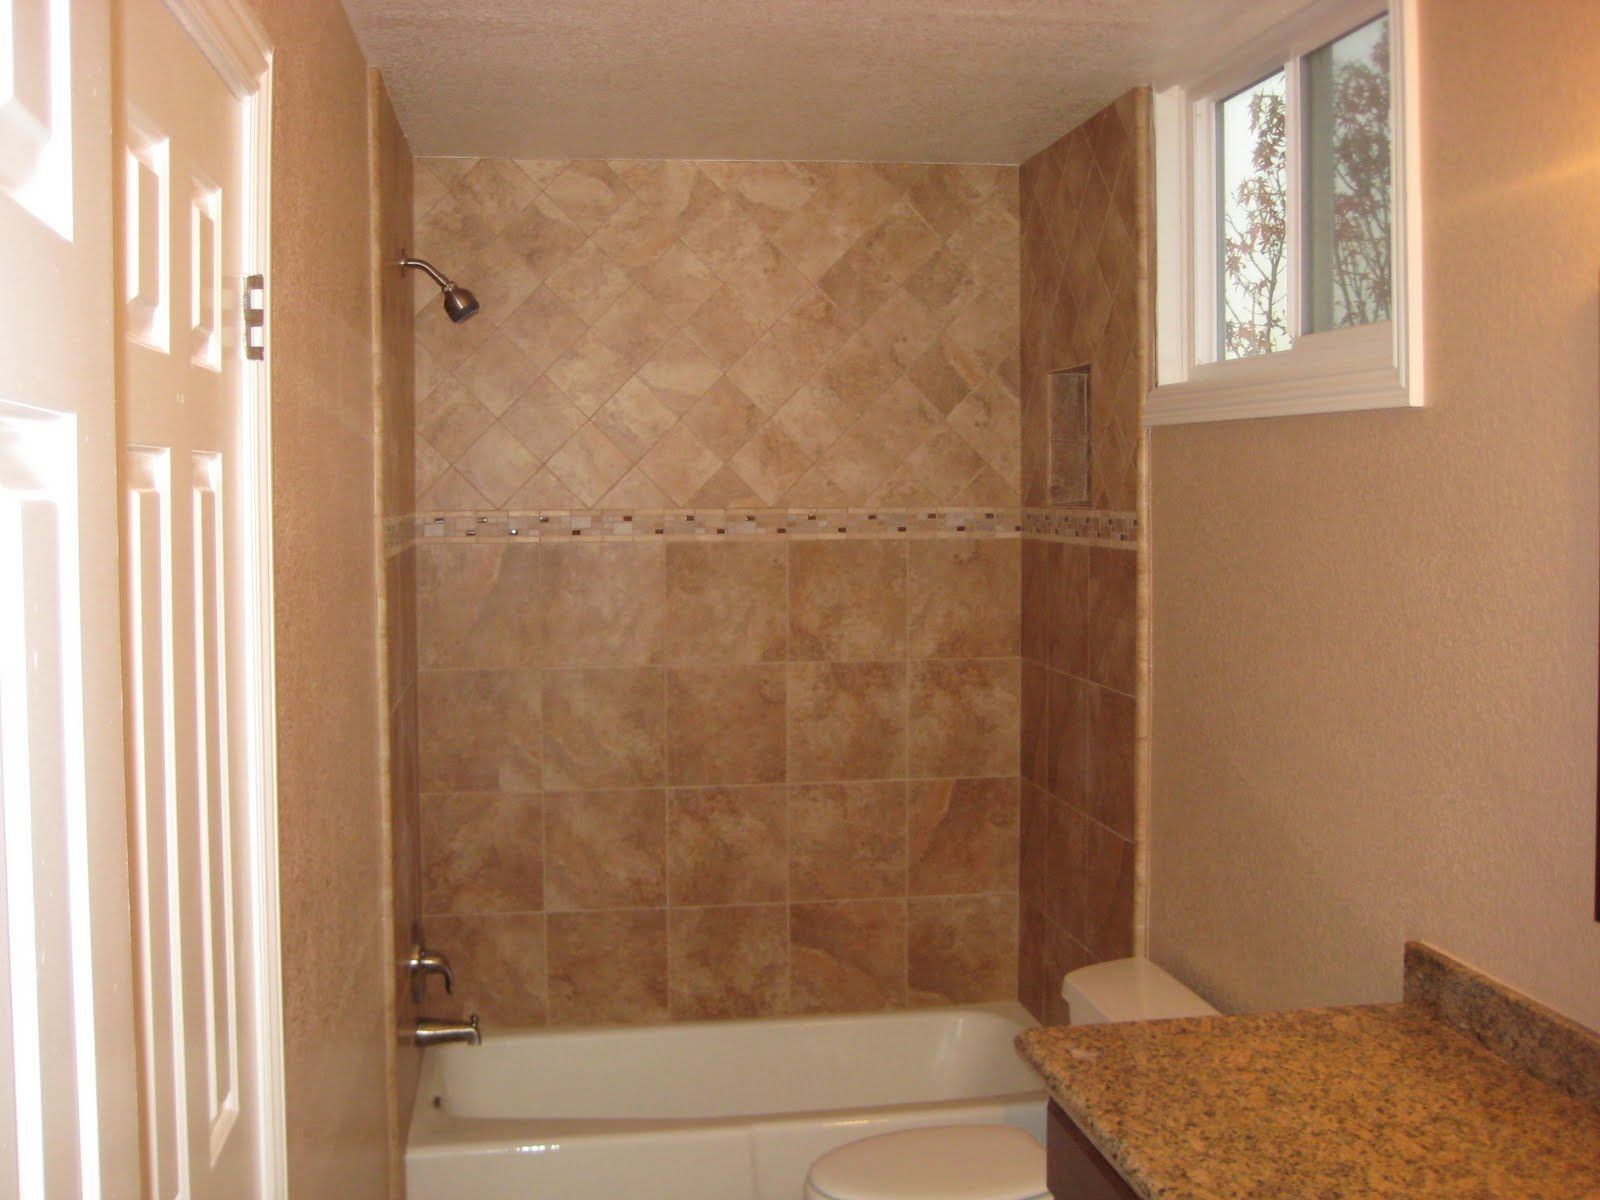 Tile Tub Walls | Demo Tile On Floor And Shower Walls New Vanity Tub Wall  Tile